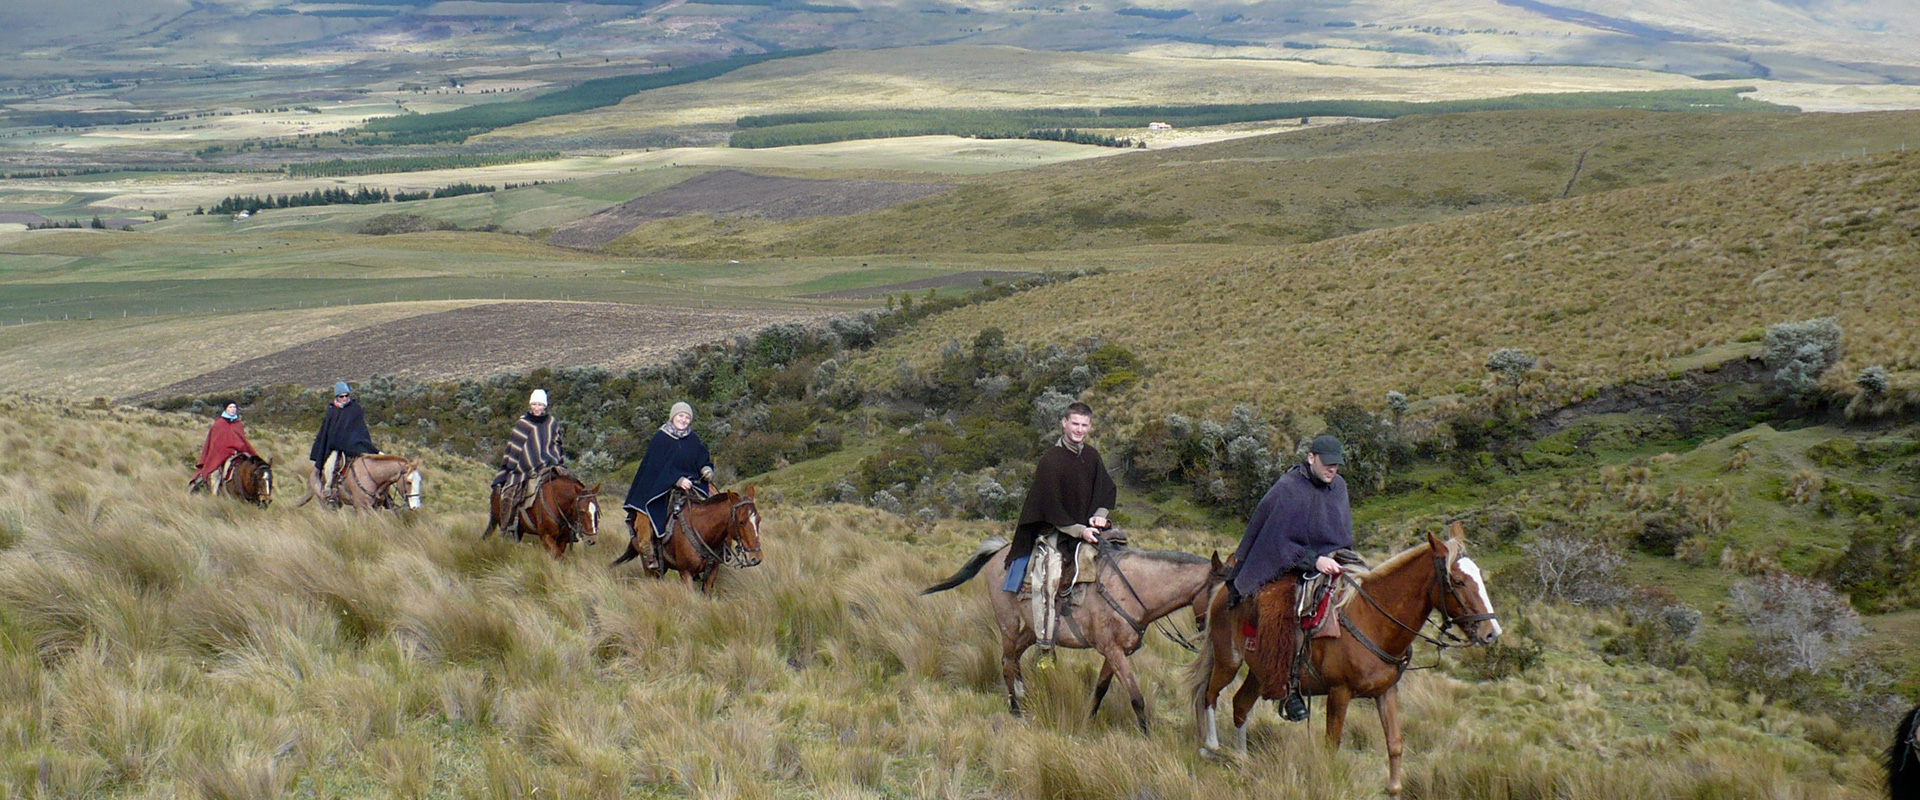 Cotopaxi Horseback Riding